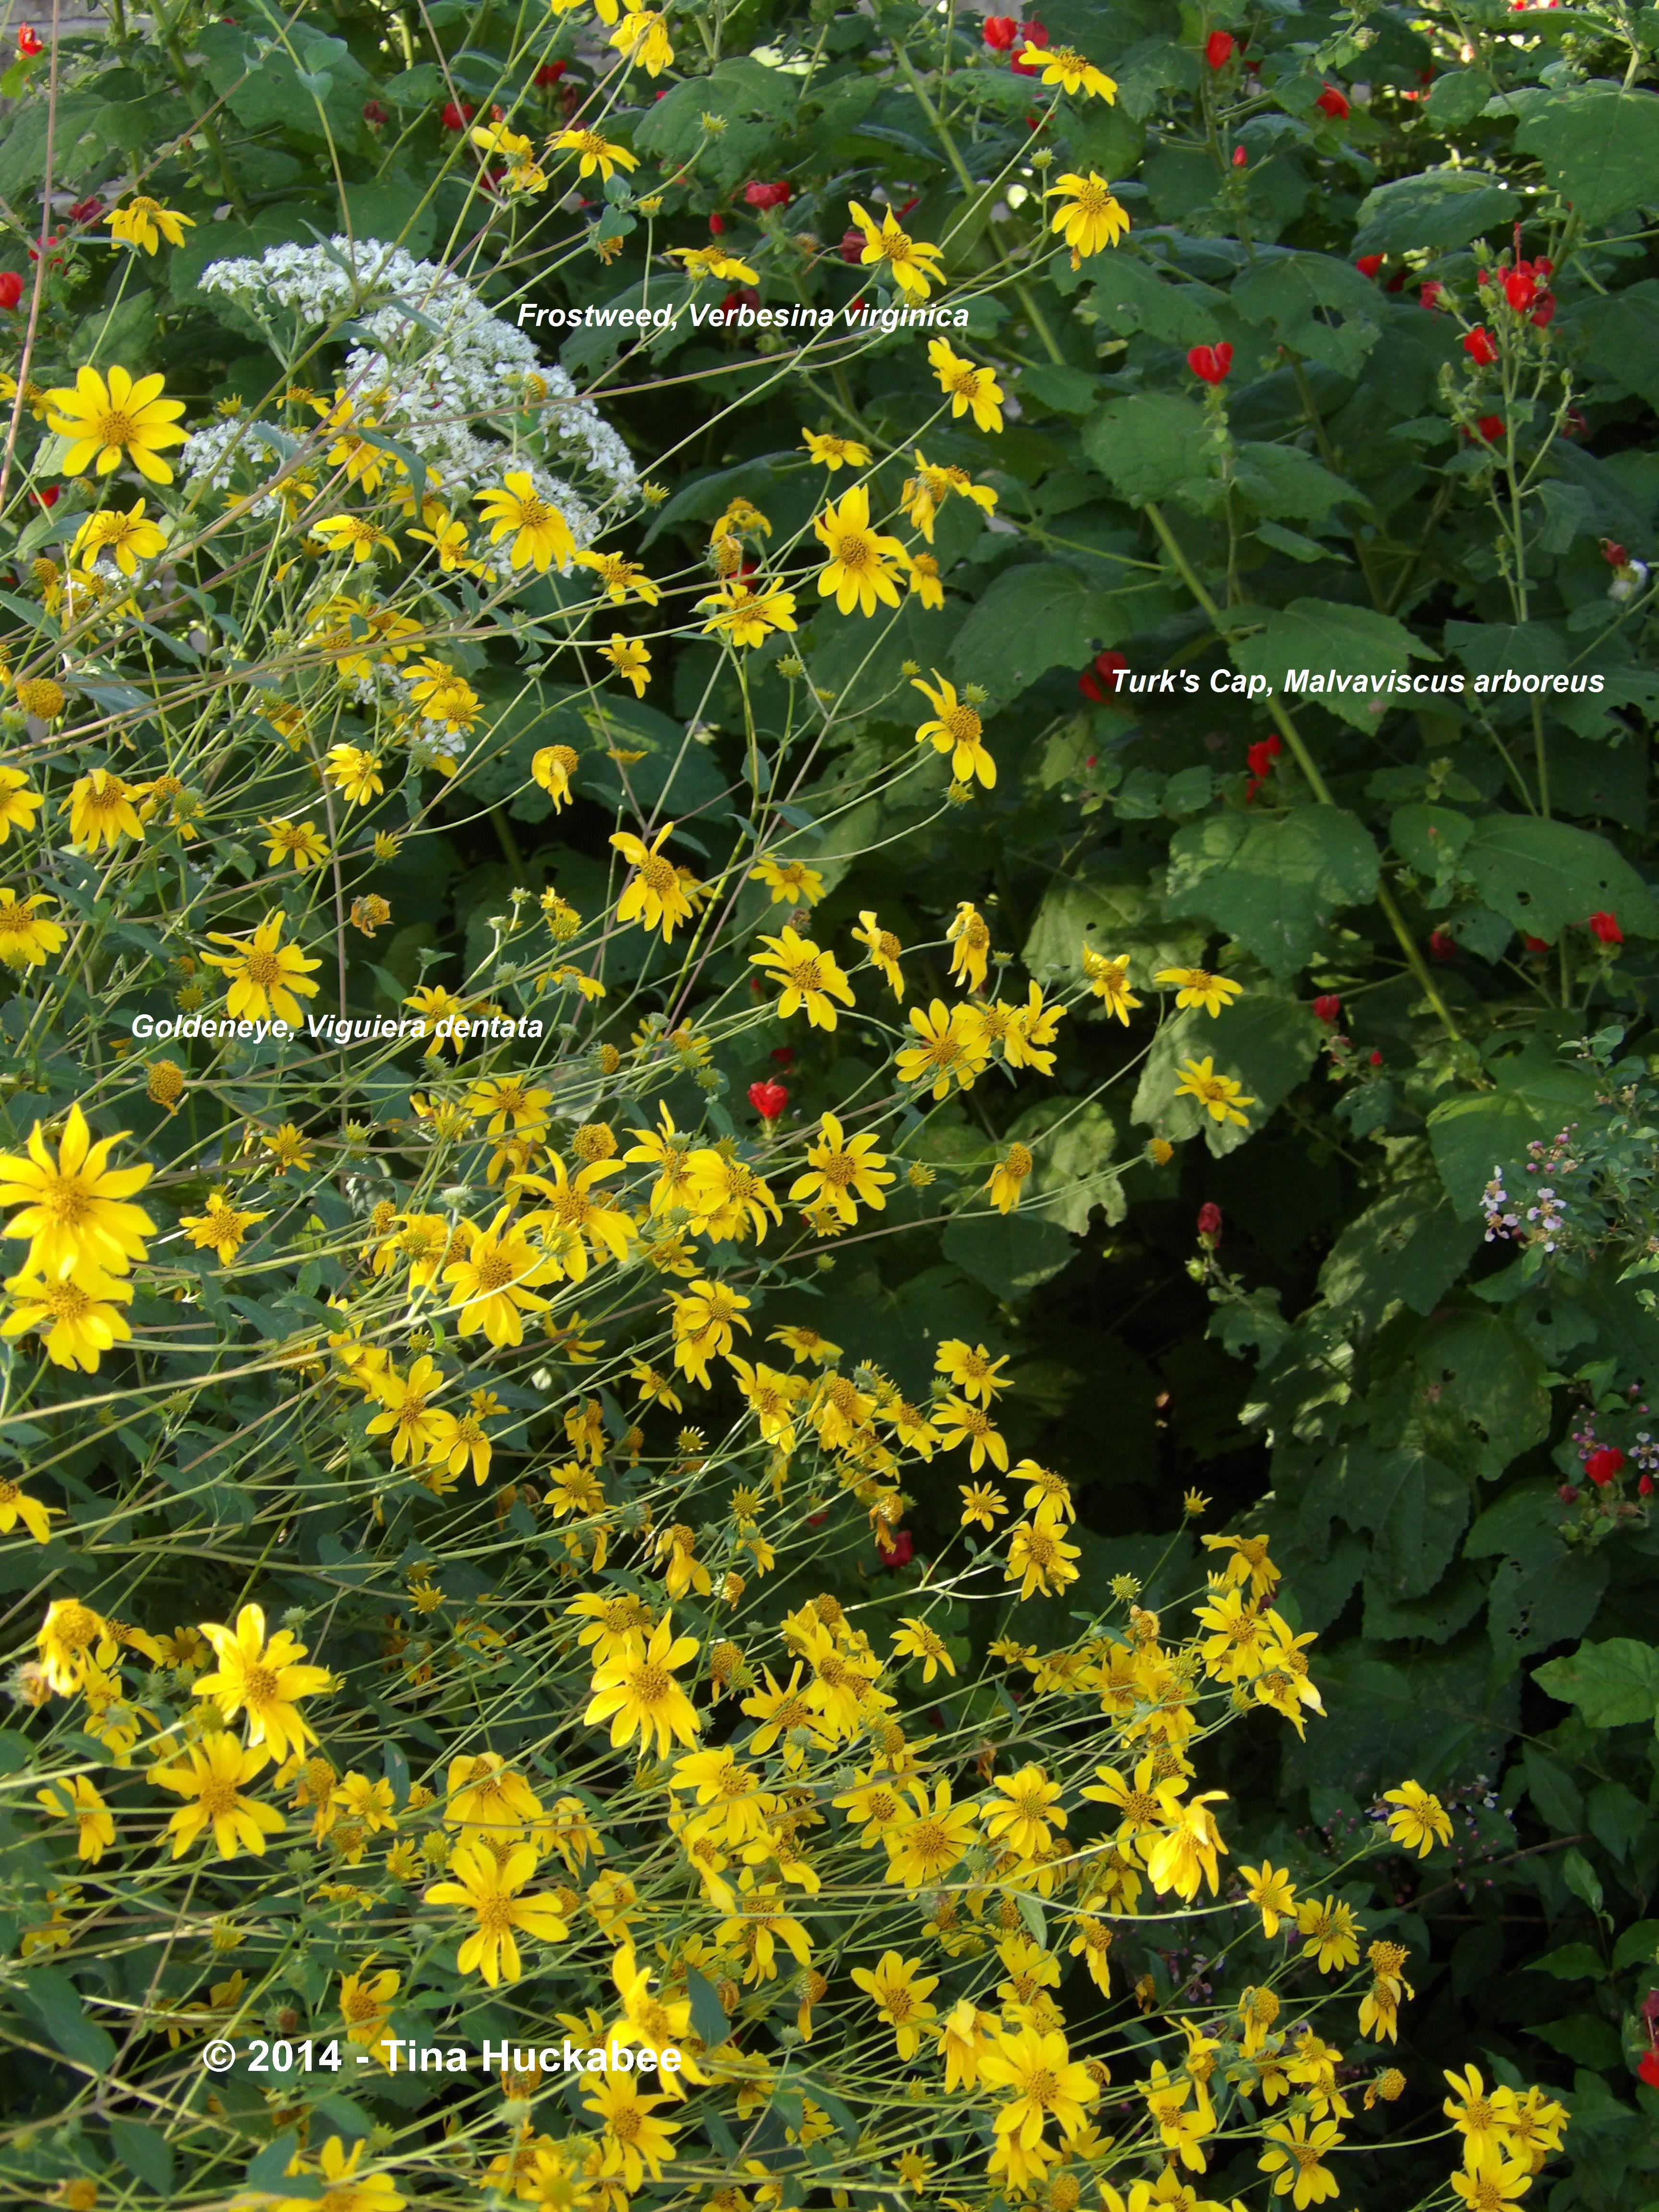 Gardening with native plants – What Should I Plant in My Garden